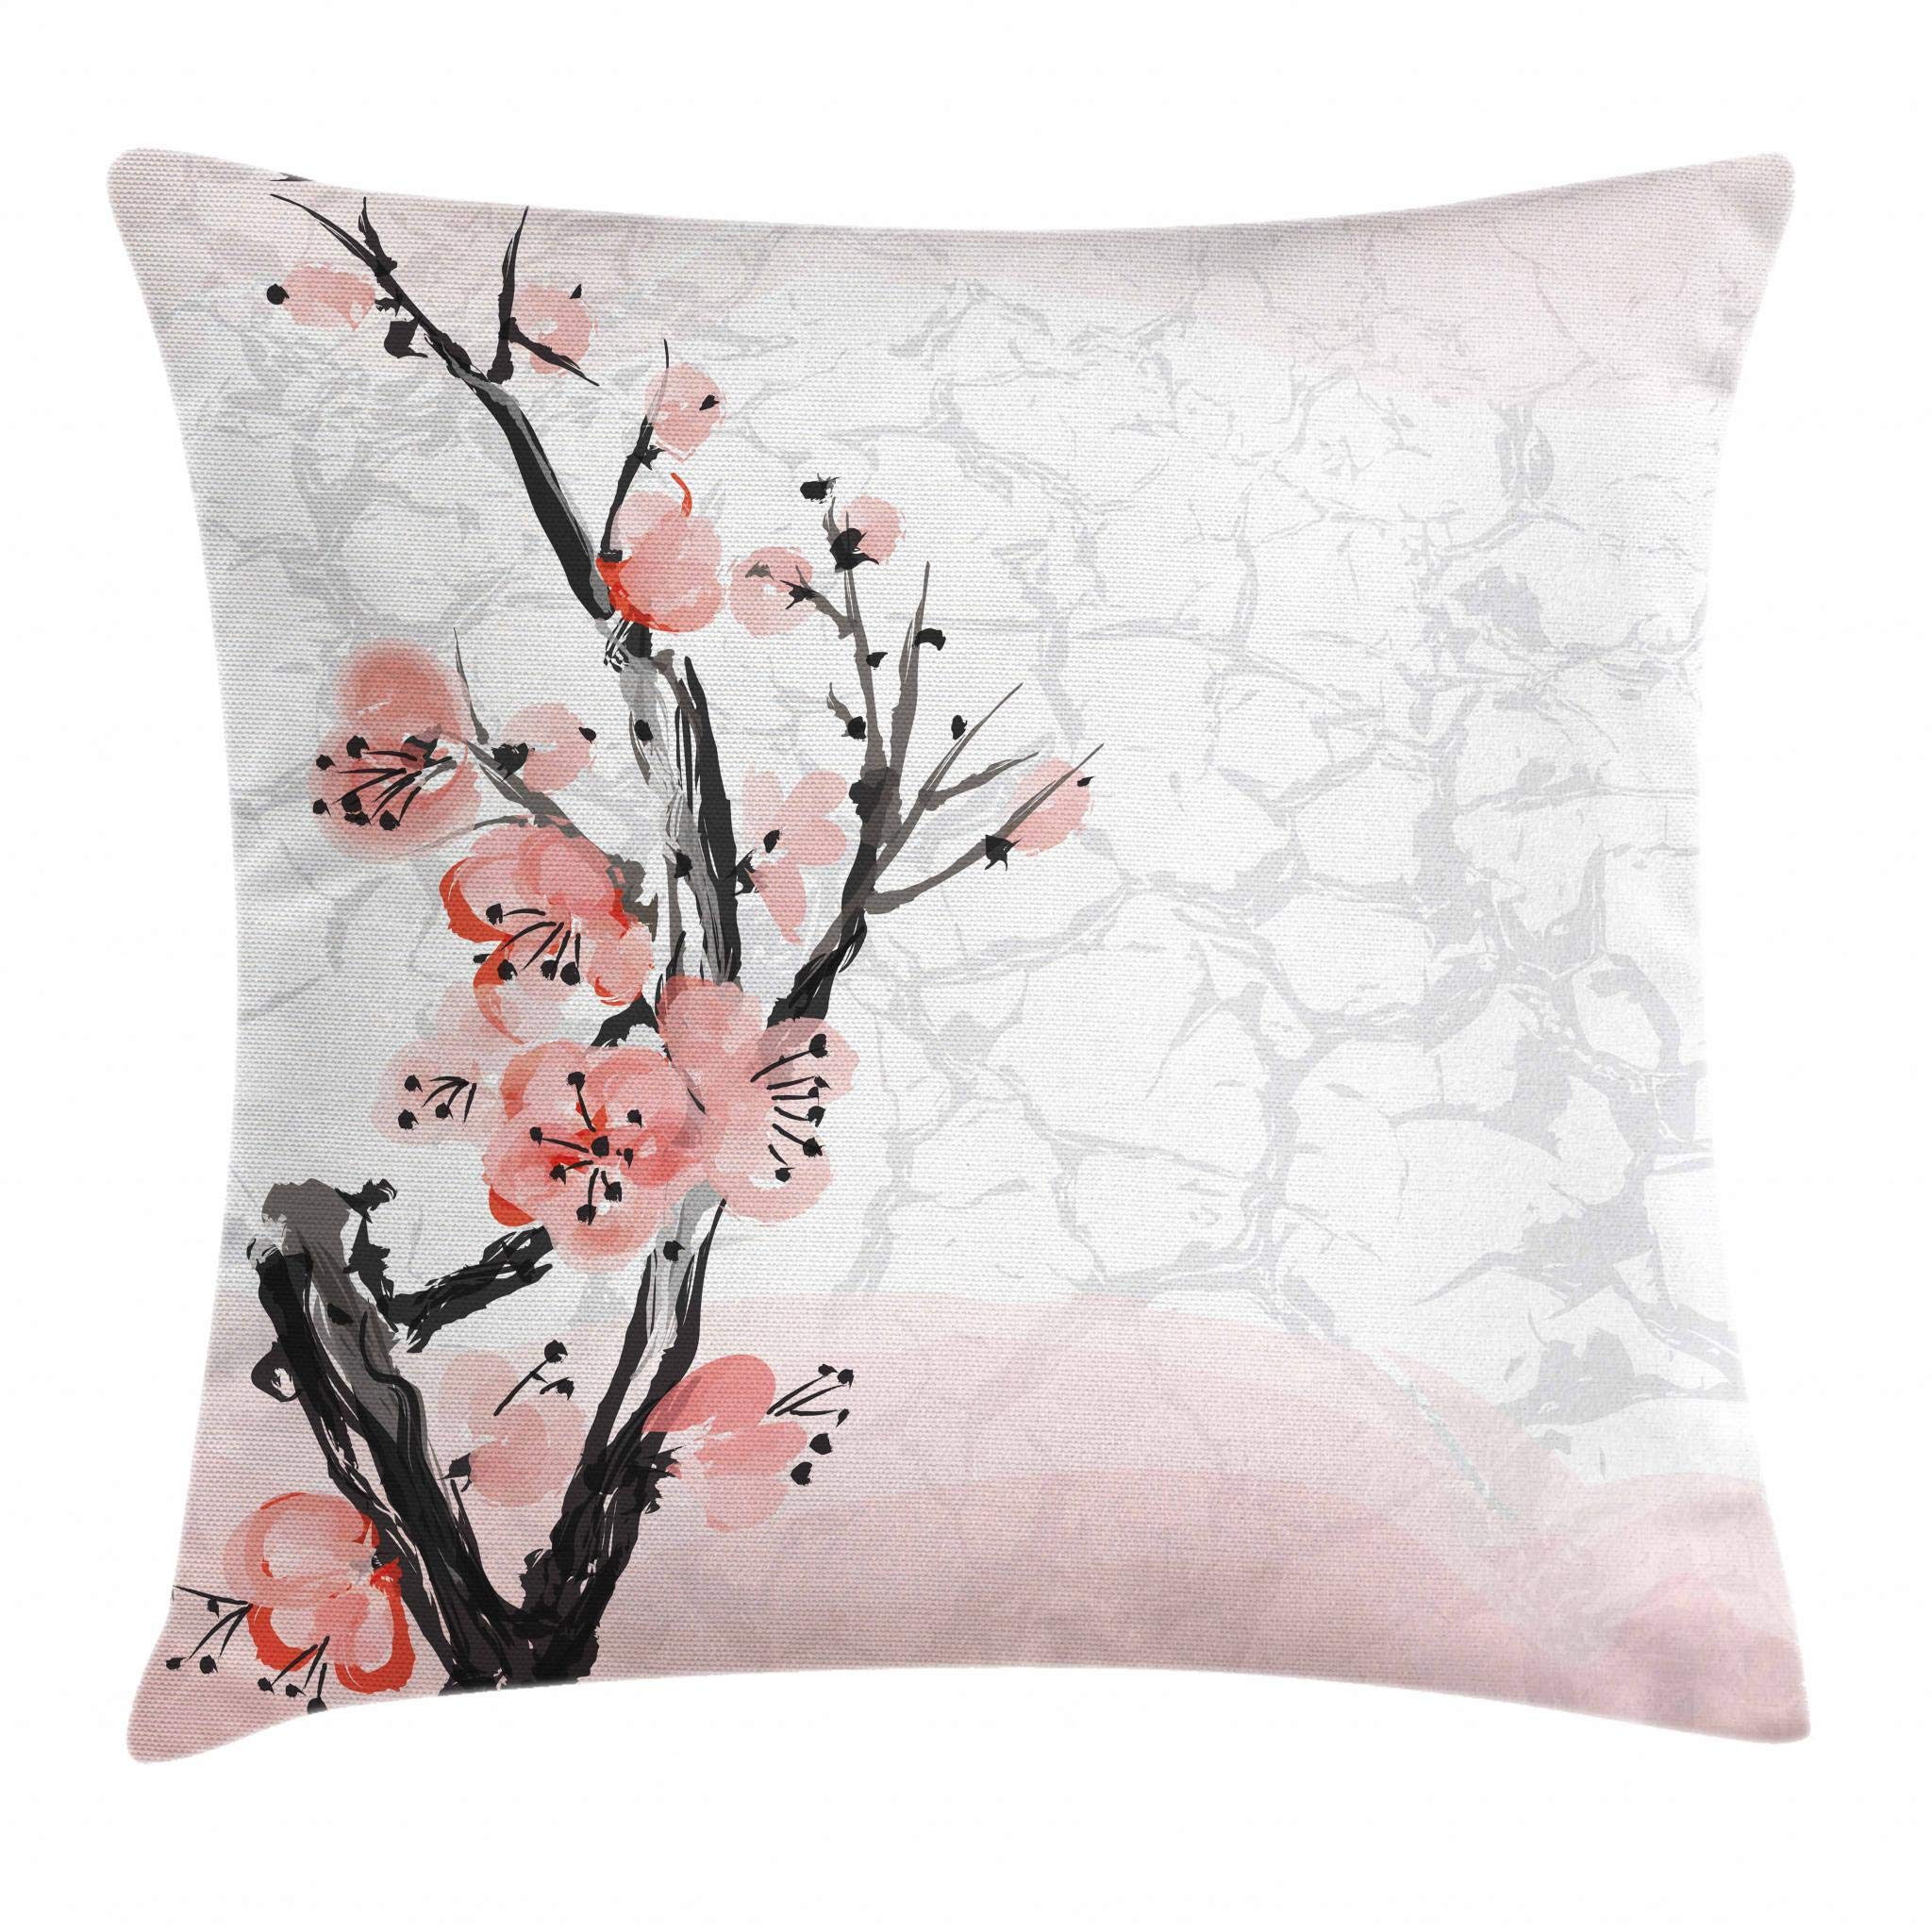 Ambesonne Floral Throw Pillow Cushion Cover, Japanese Cherry Blossom Sakura Tree Branch Soft Pastel Watercolor Print, Decorative Square Accent Pillow Case, 20 X 20 Inches, Coral Light Pink Grey